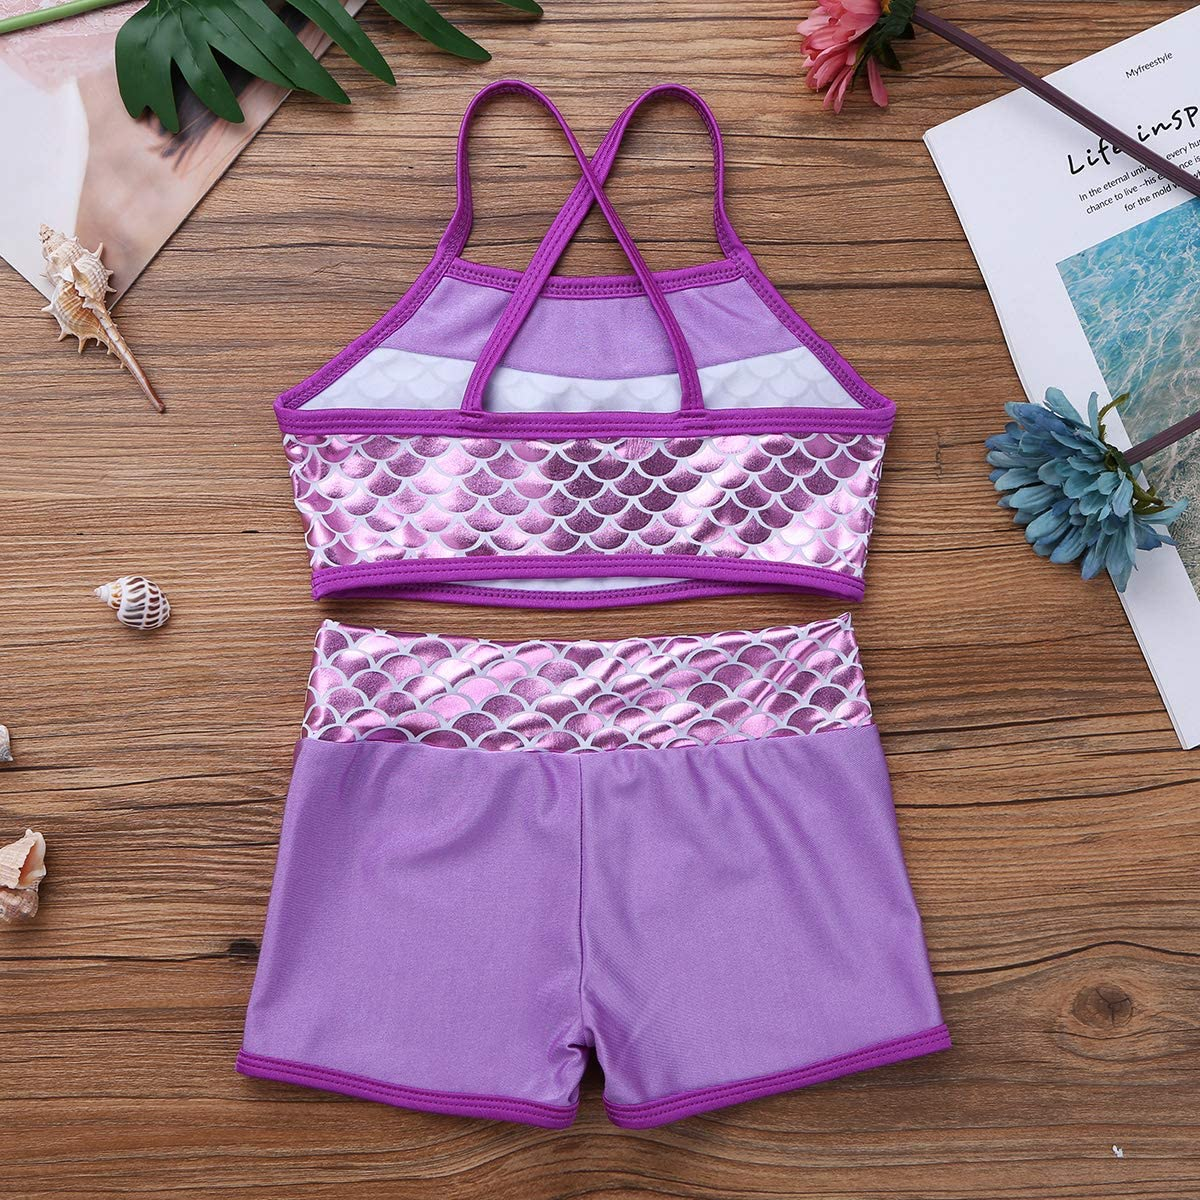 Mufeng Kids Girls Basic 2 Piece Active Dancewear Outfit Sequined Crop Top and Shorts Set for Gymnastics Dancing Workout